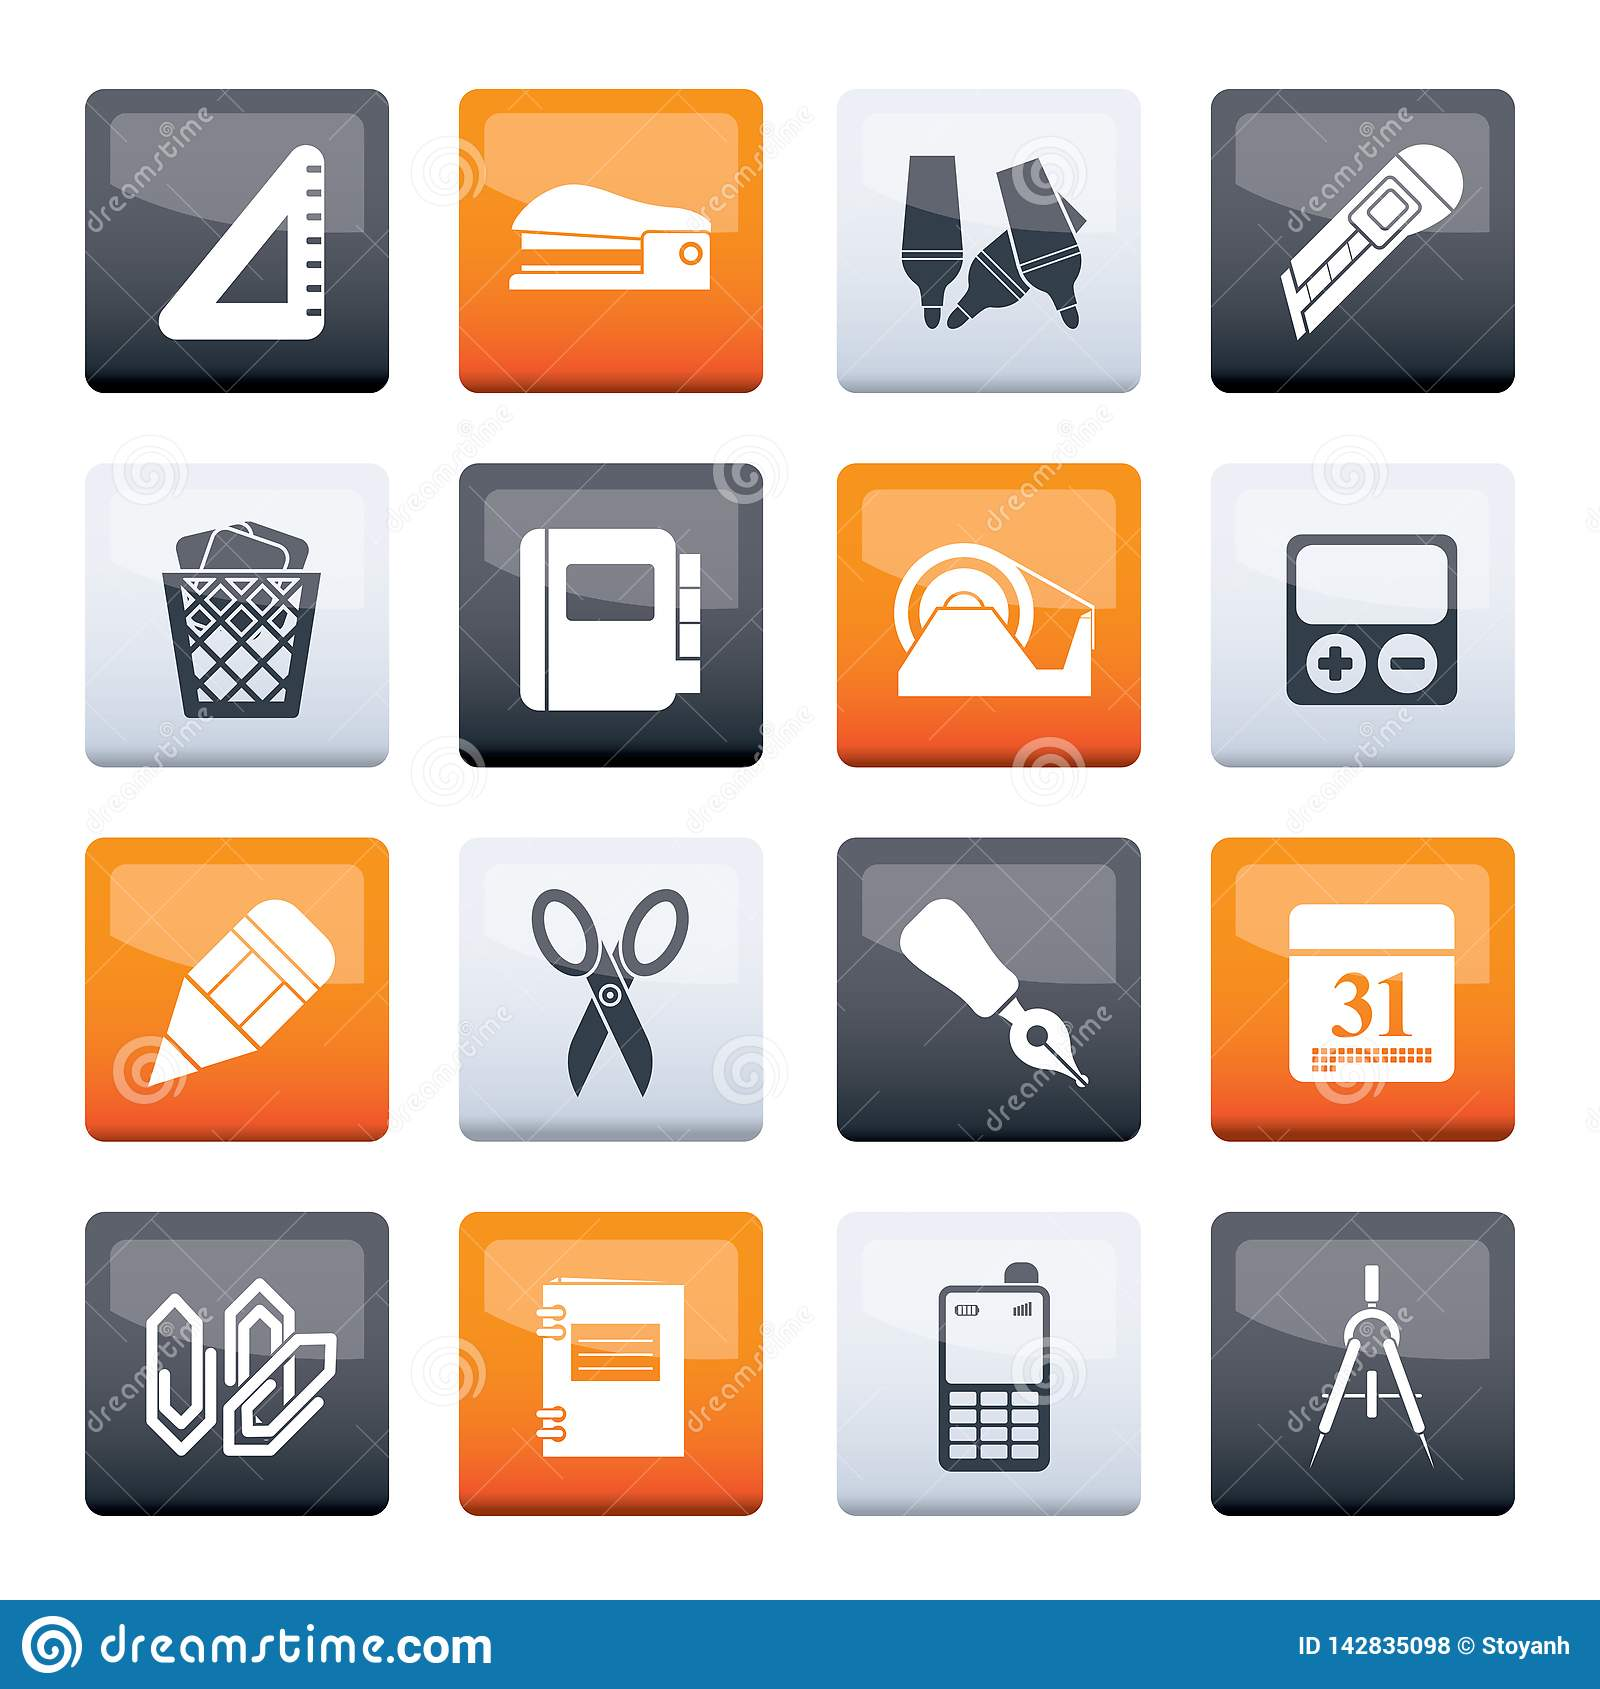 Business and office objects icons over color background